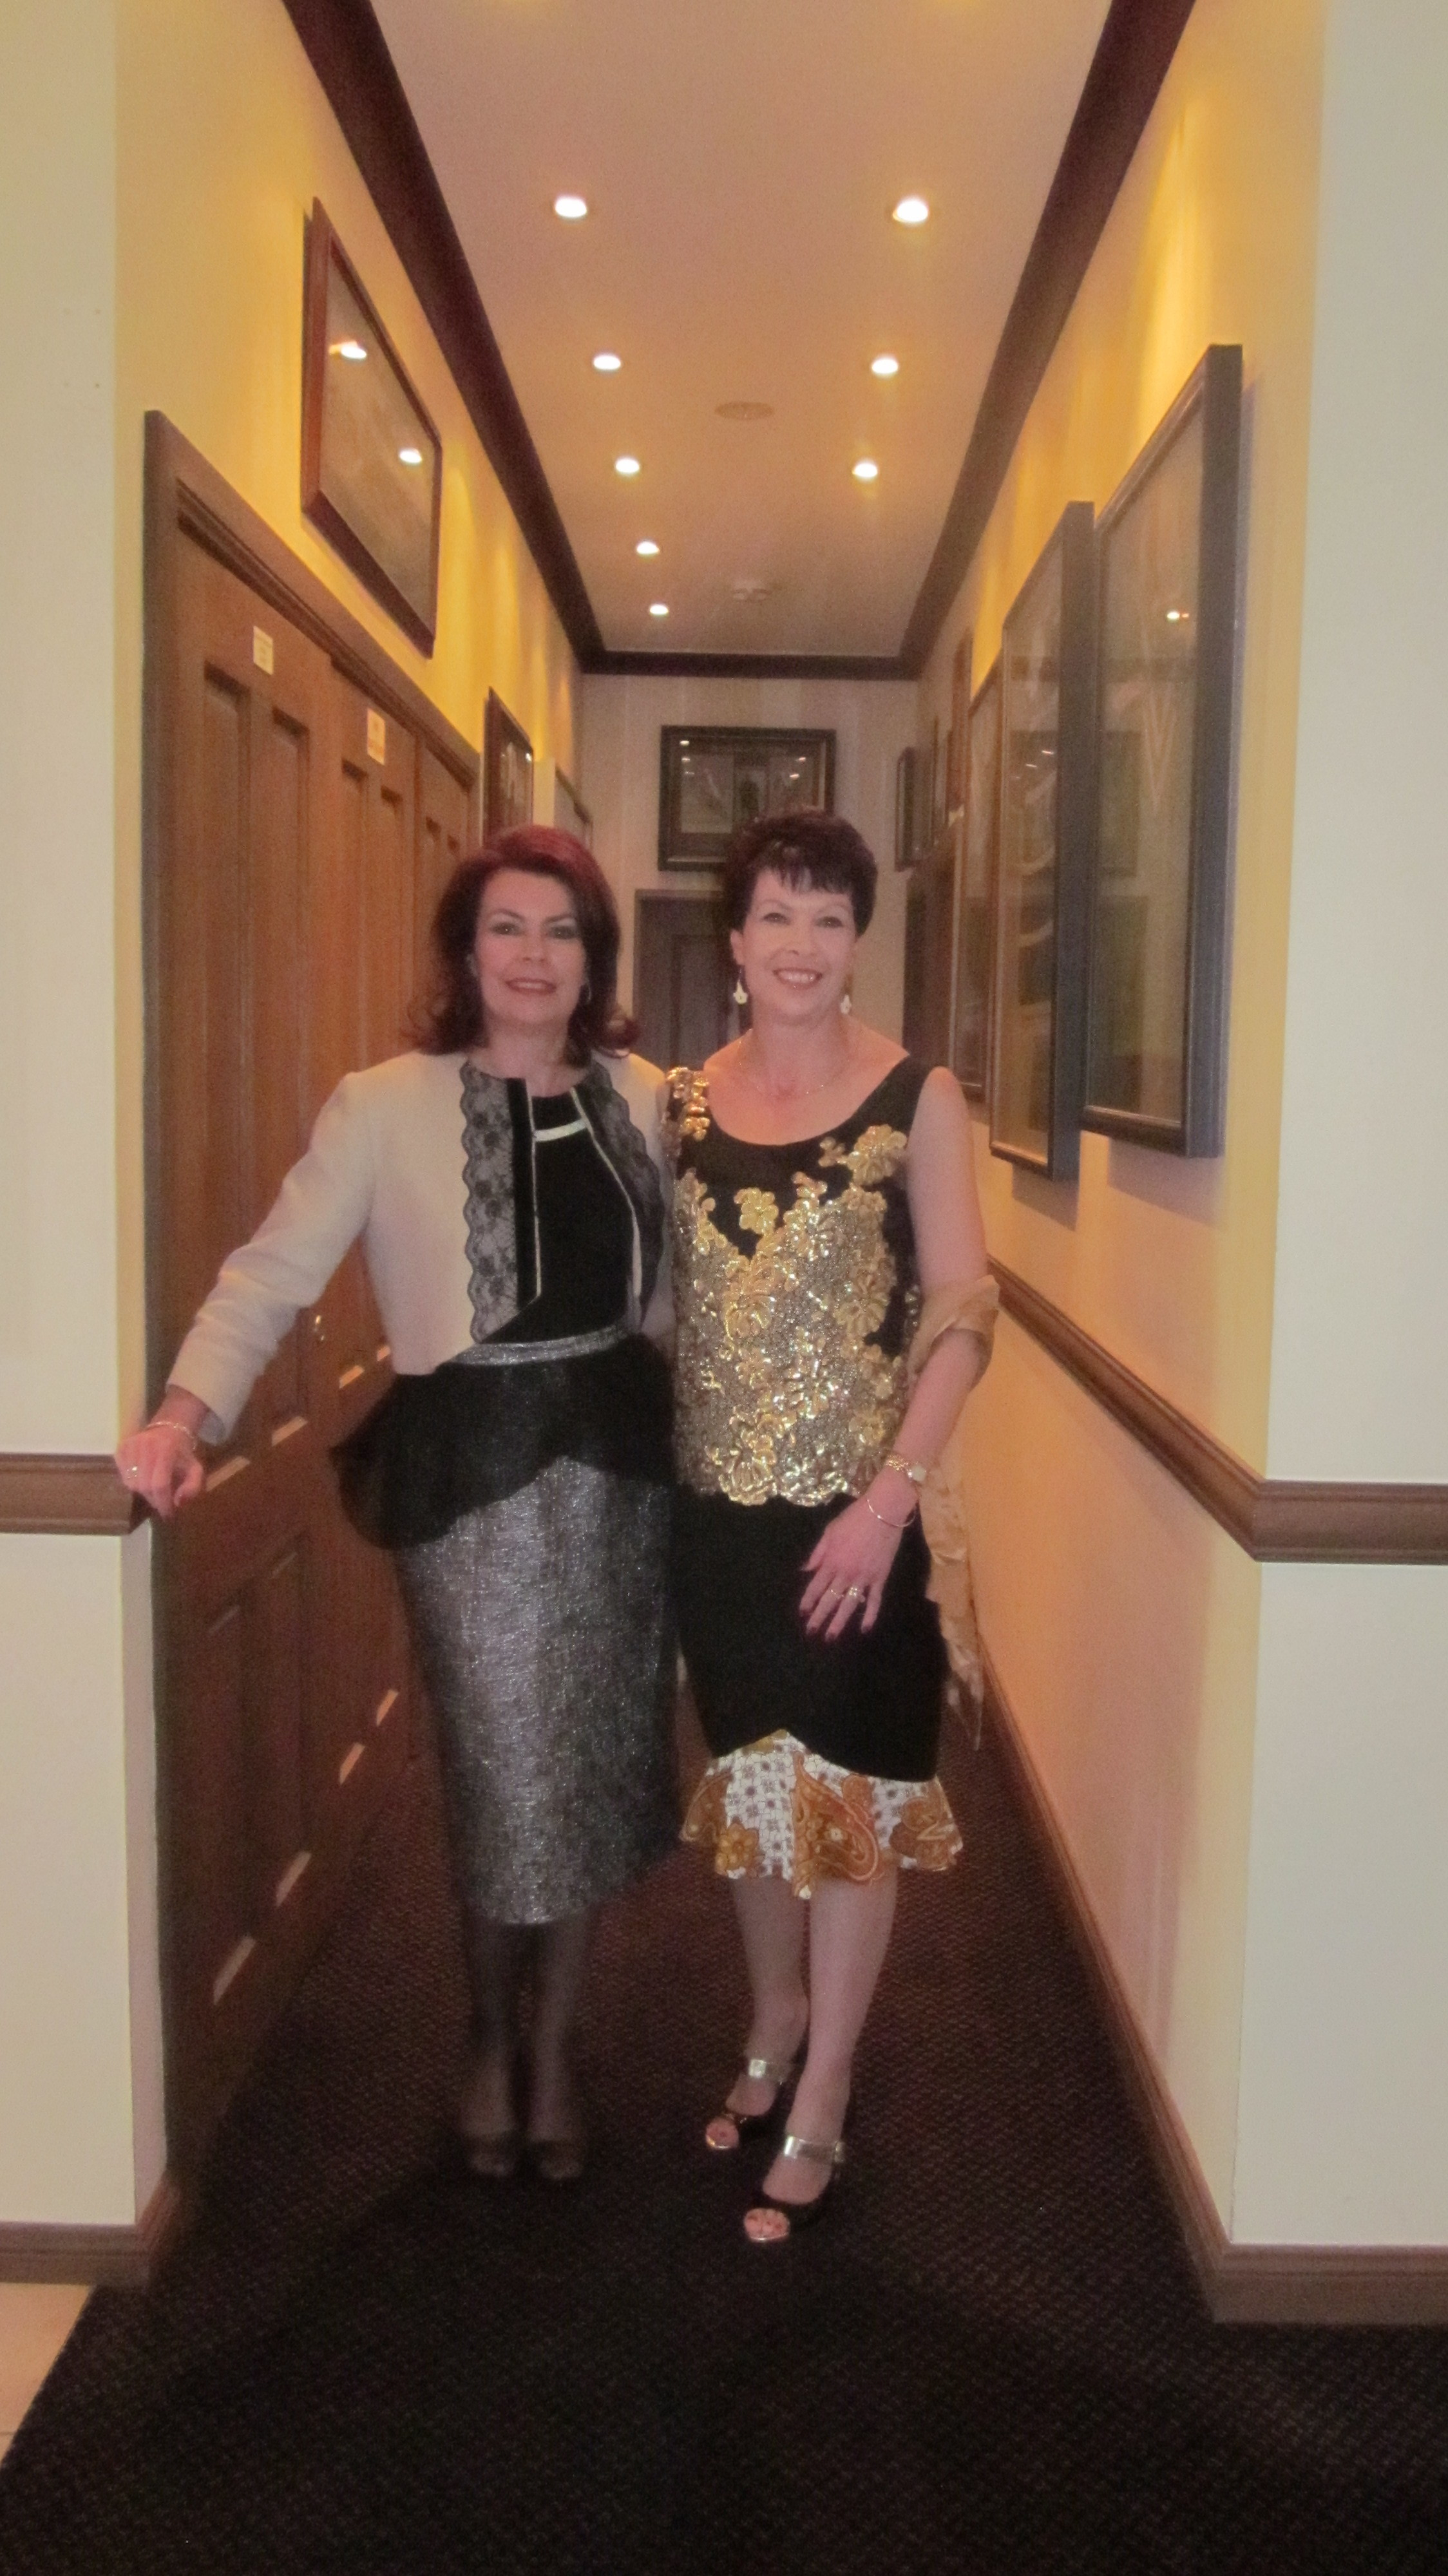 Lorelle wears the Gothic Coffee Bolero with the Silver Drama Skirt. Leanne wears the black and gold Cleopatra Blouse and the black and gold Tulip Skirt.